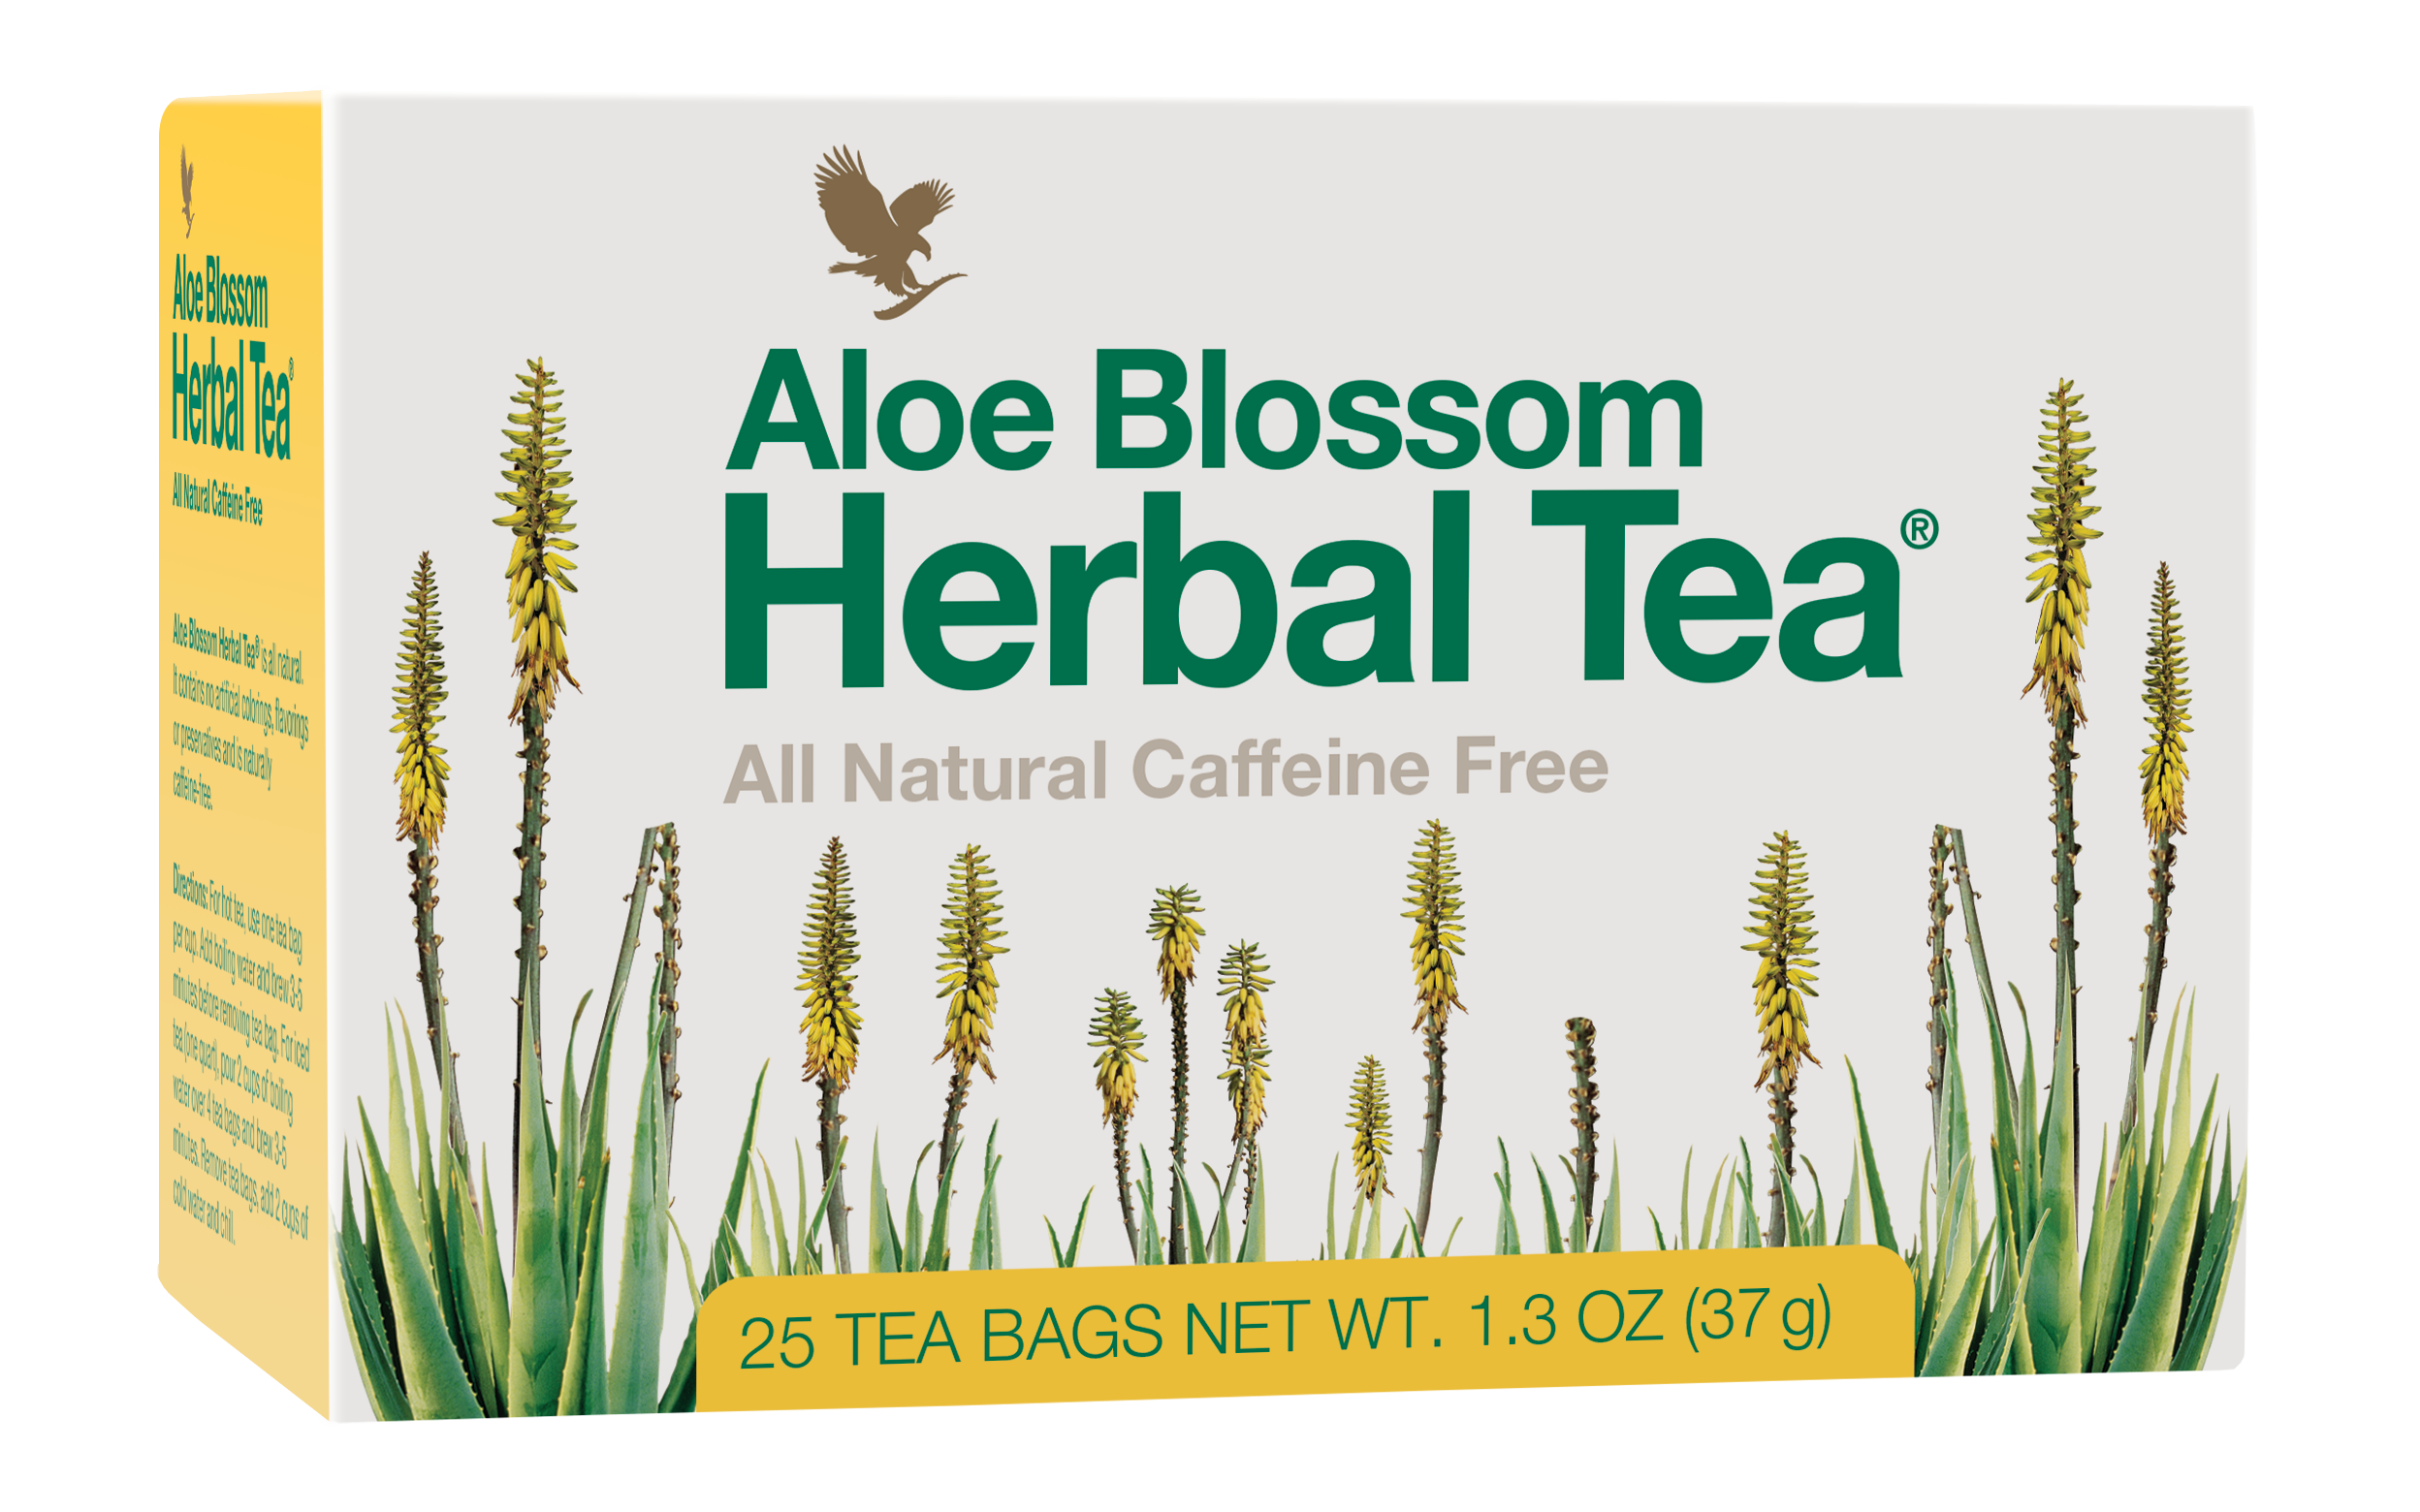 Promote inner-calm and wellbeing with this all-natural brew of leaves, herbs and spices. This caffeine-free tea features a robust combination of cinnamon, cloves, ginger, cardamom and allspice without any calories. Refreshing, soothing and naturally low in calories, Aloe Blossom Herbal Tea is delicious served warm or with ice as a refreshing alternative. Each pack contains twenty-five individually foil-wrapped sachets.